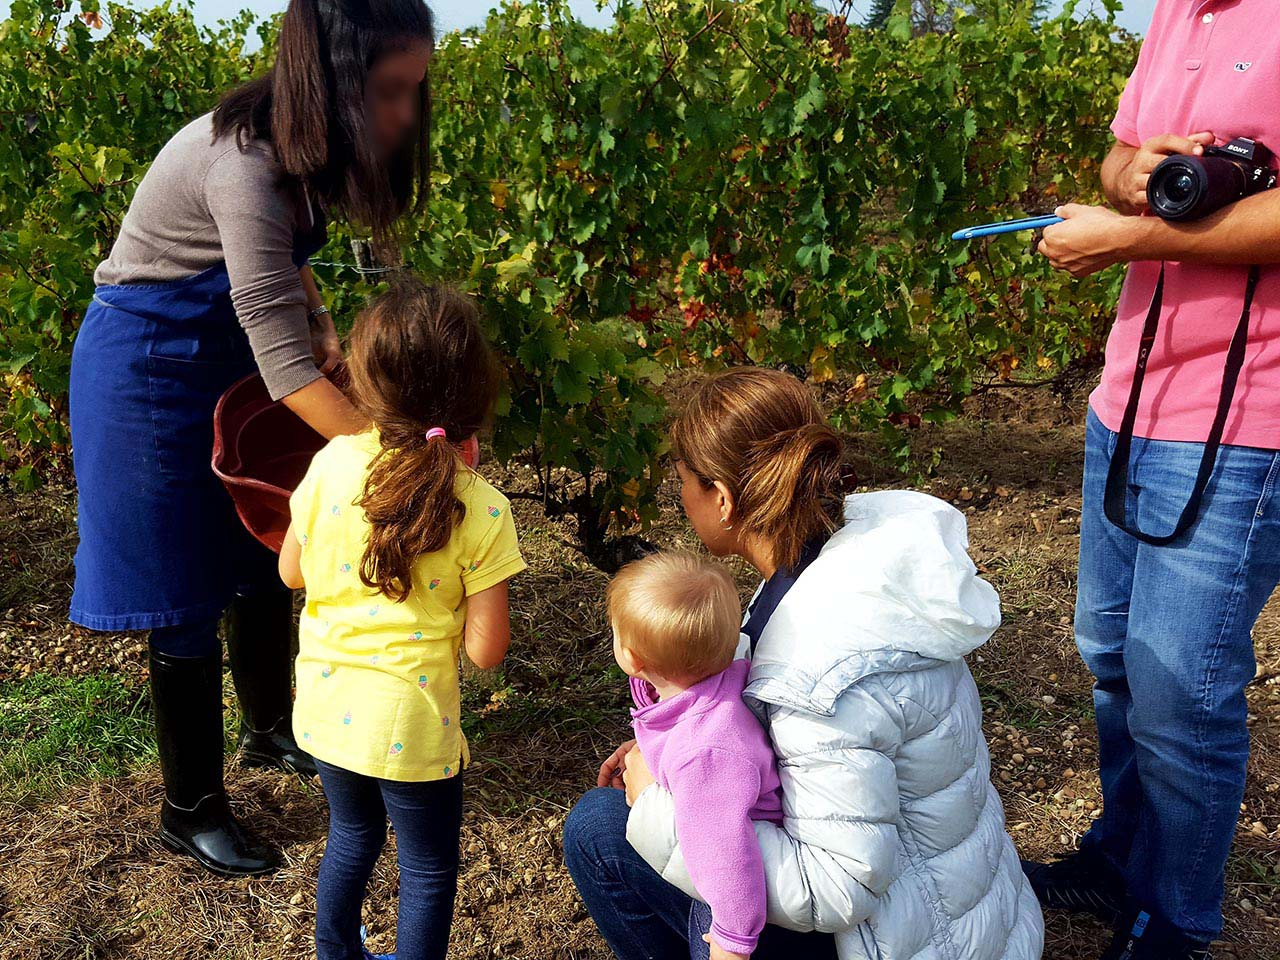 Family-friendly-Bordeaux-wine-tours-kids-harvesting